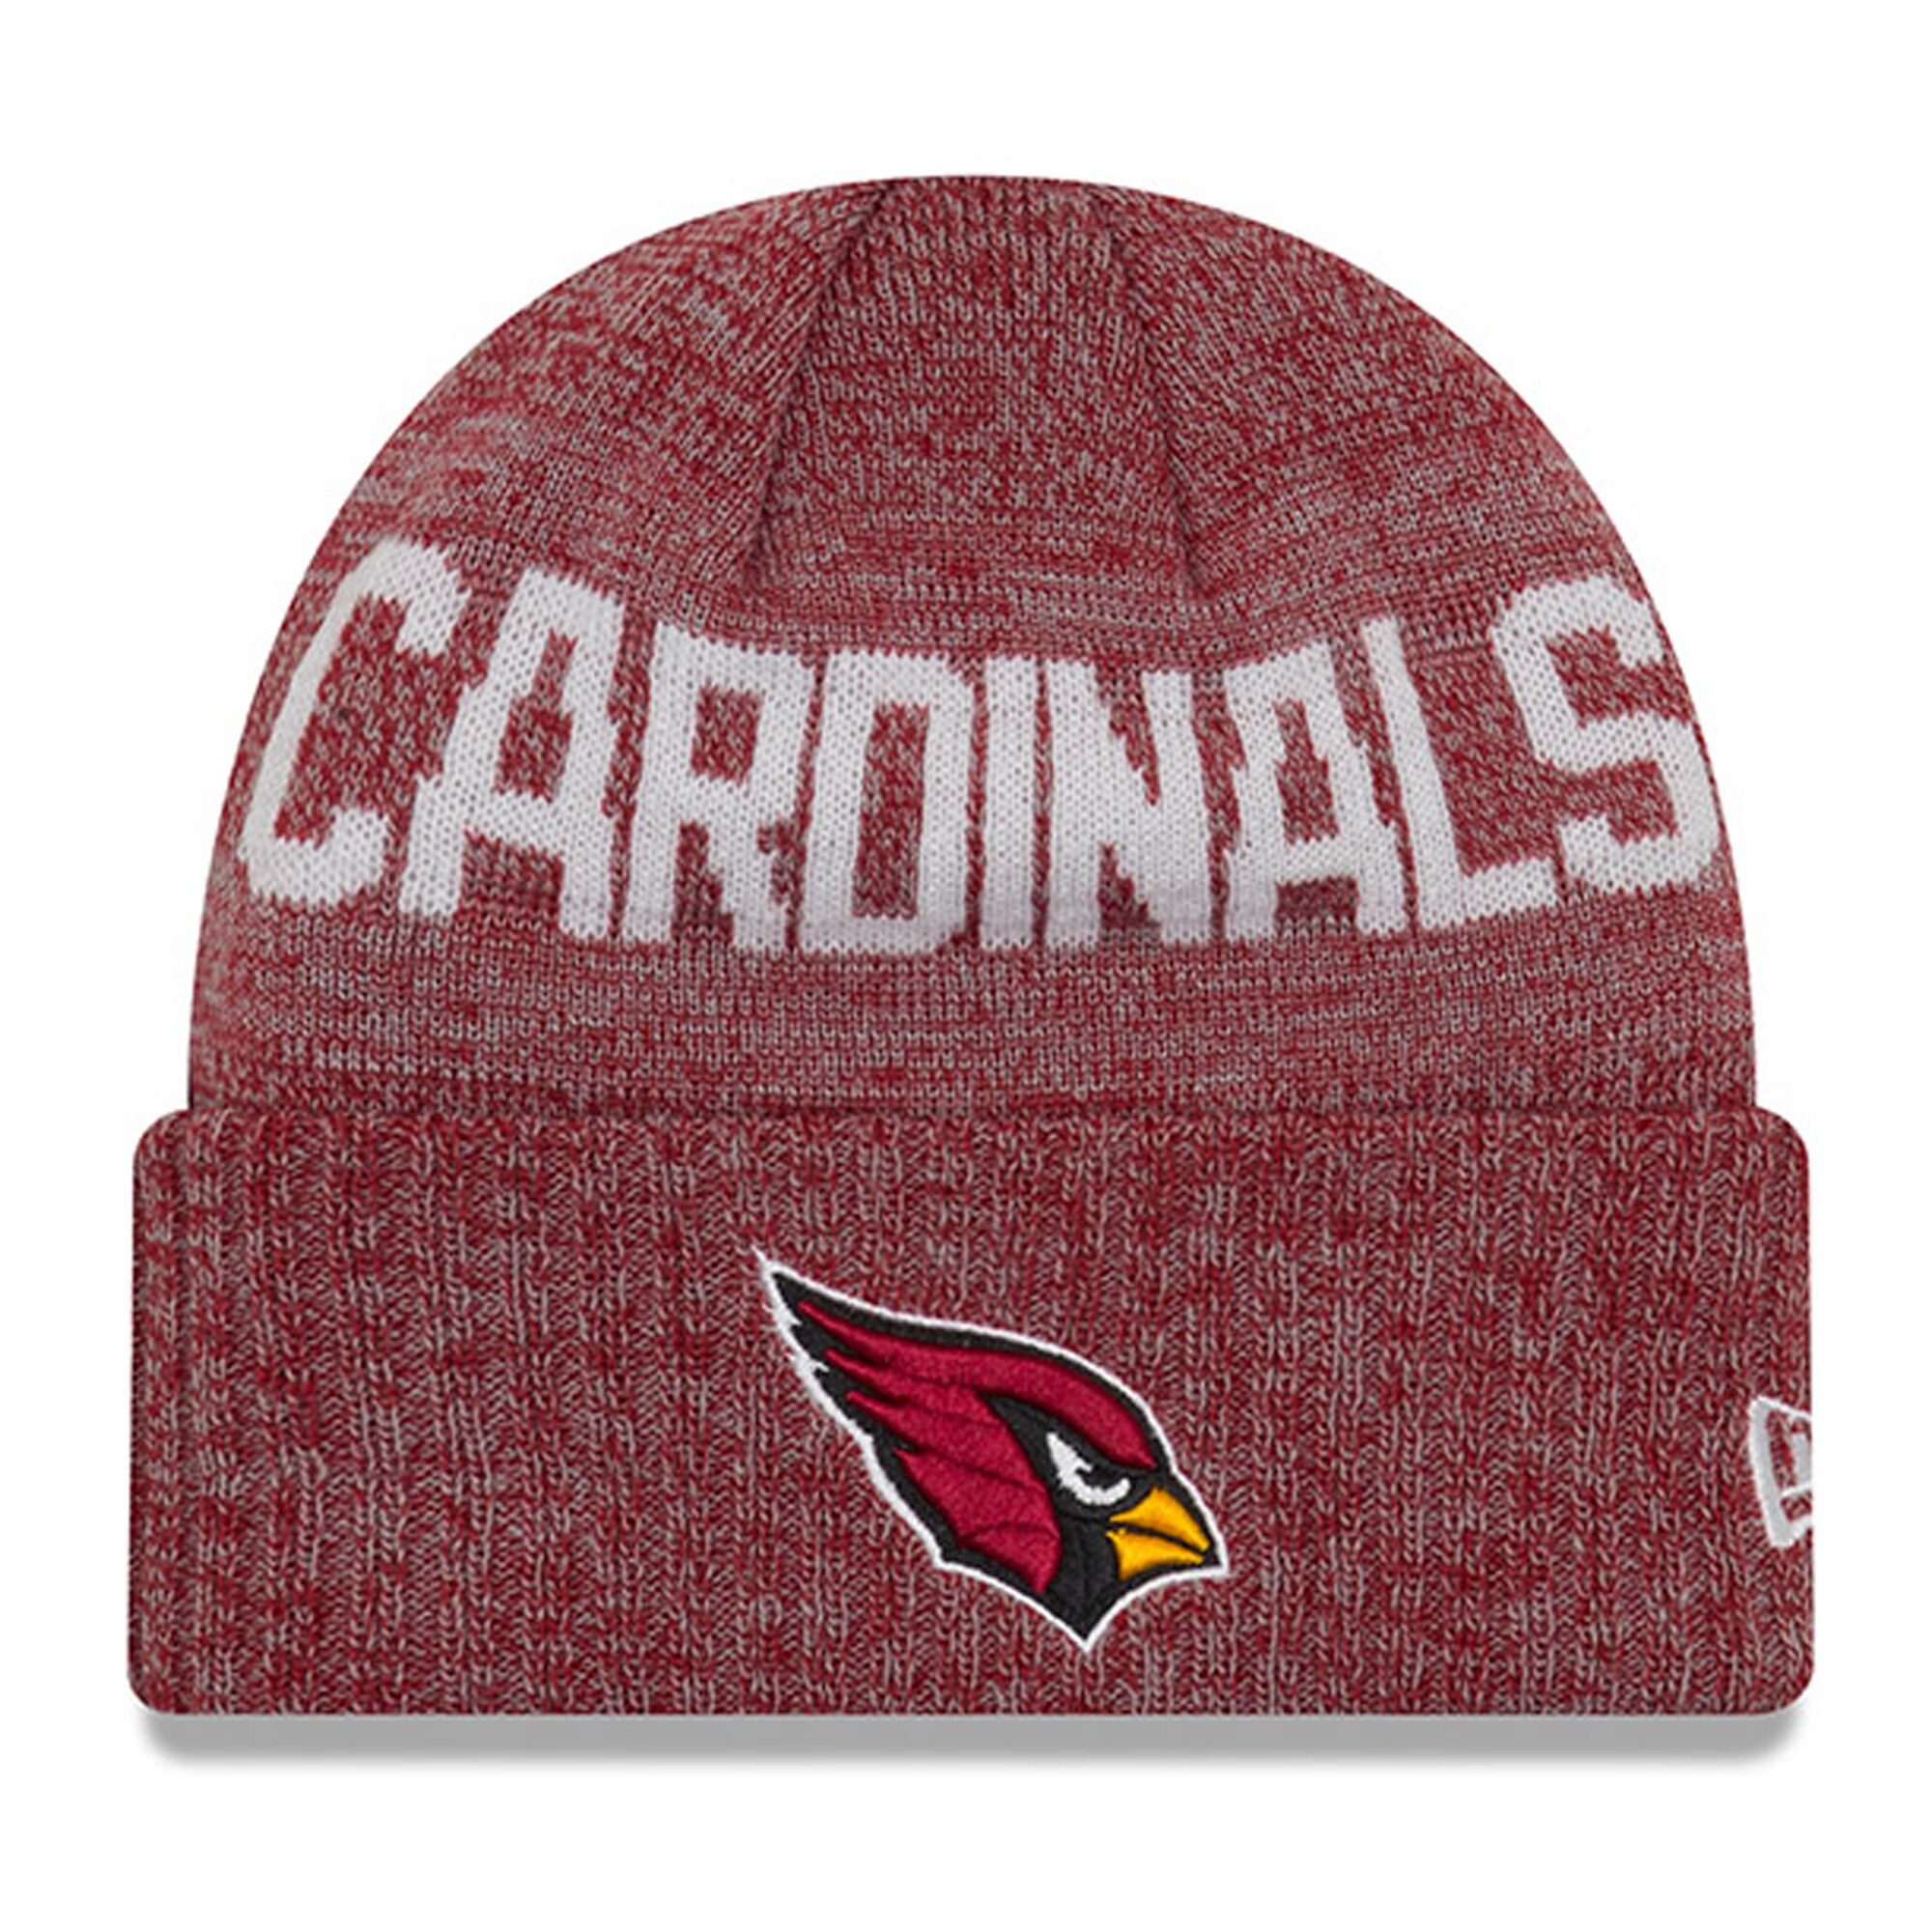 Arizona Cardinals New Era Preschool & Toddler Crisp Color Knit Cuffed Hat - Cardinal